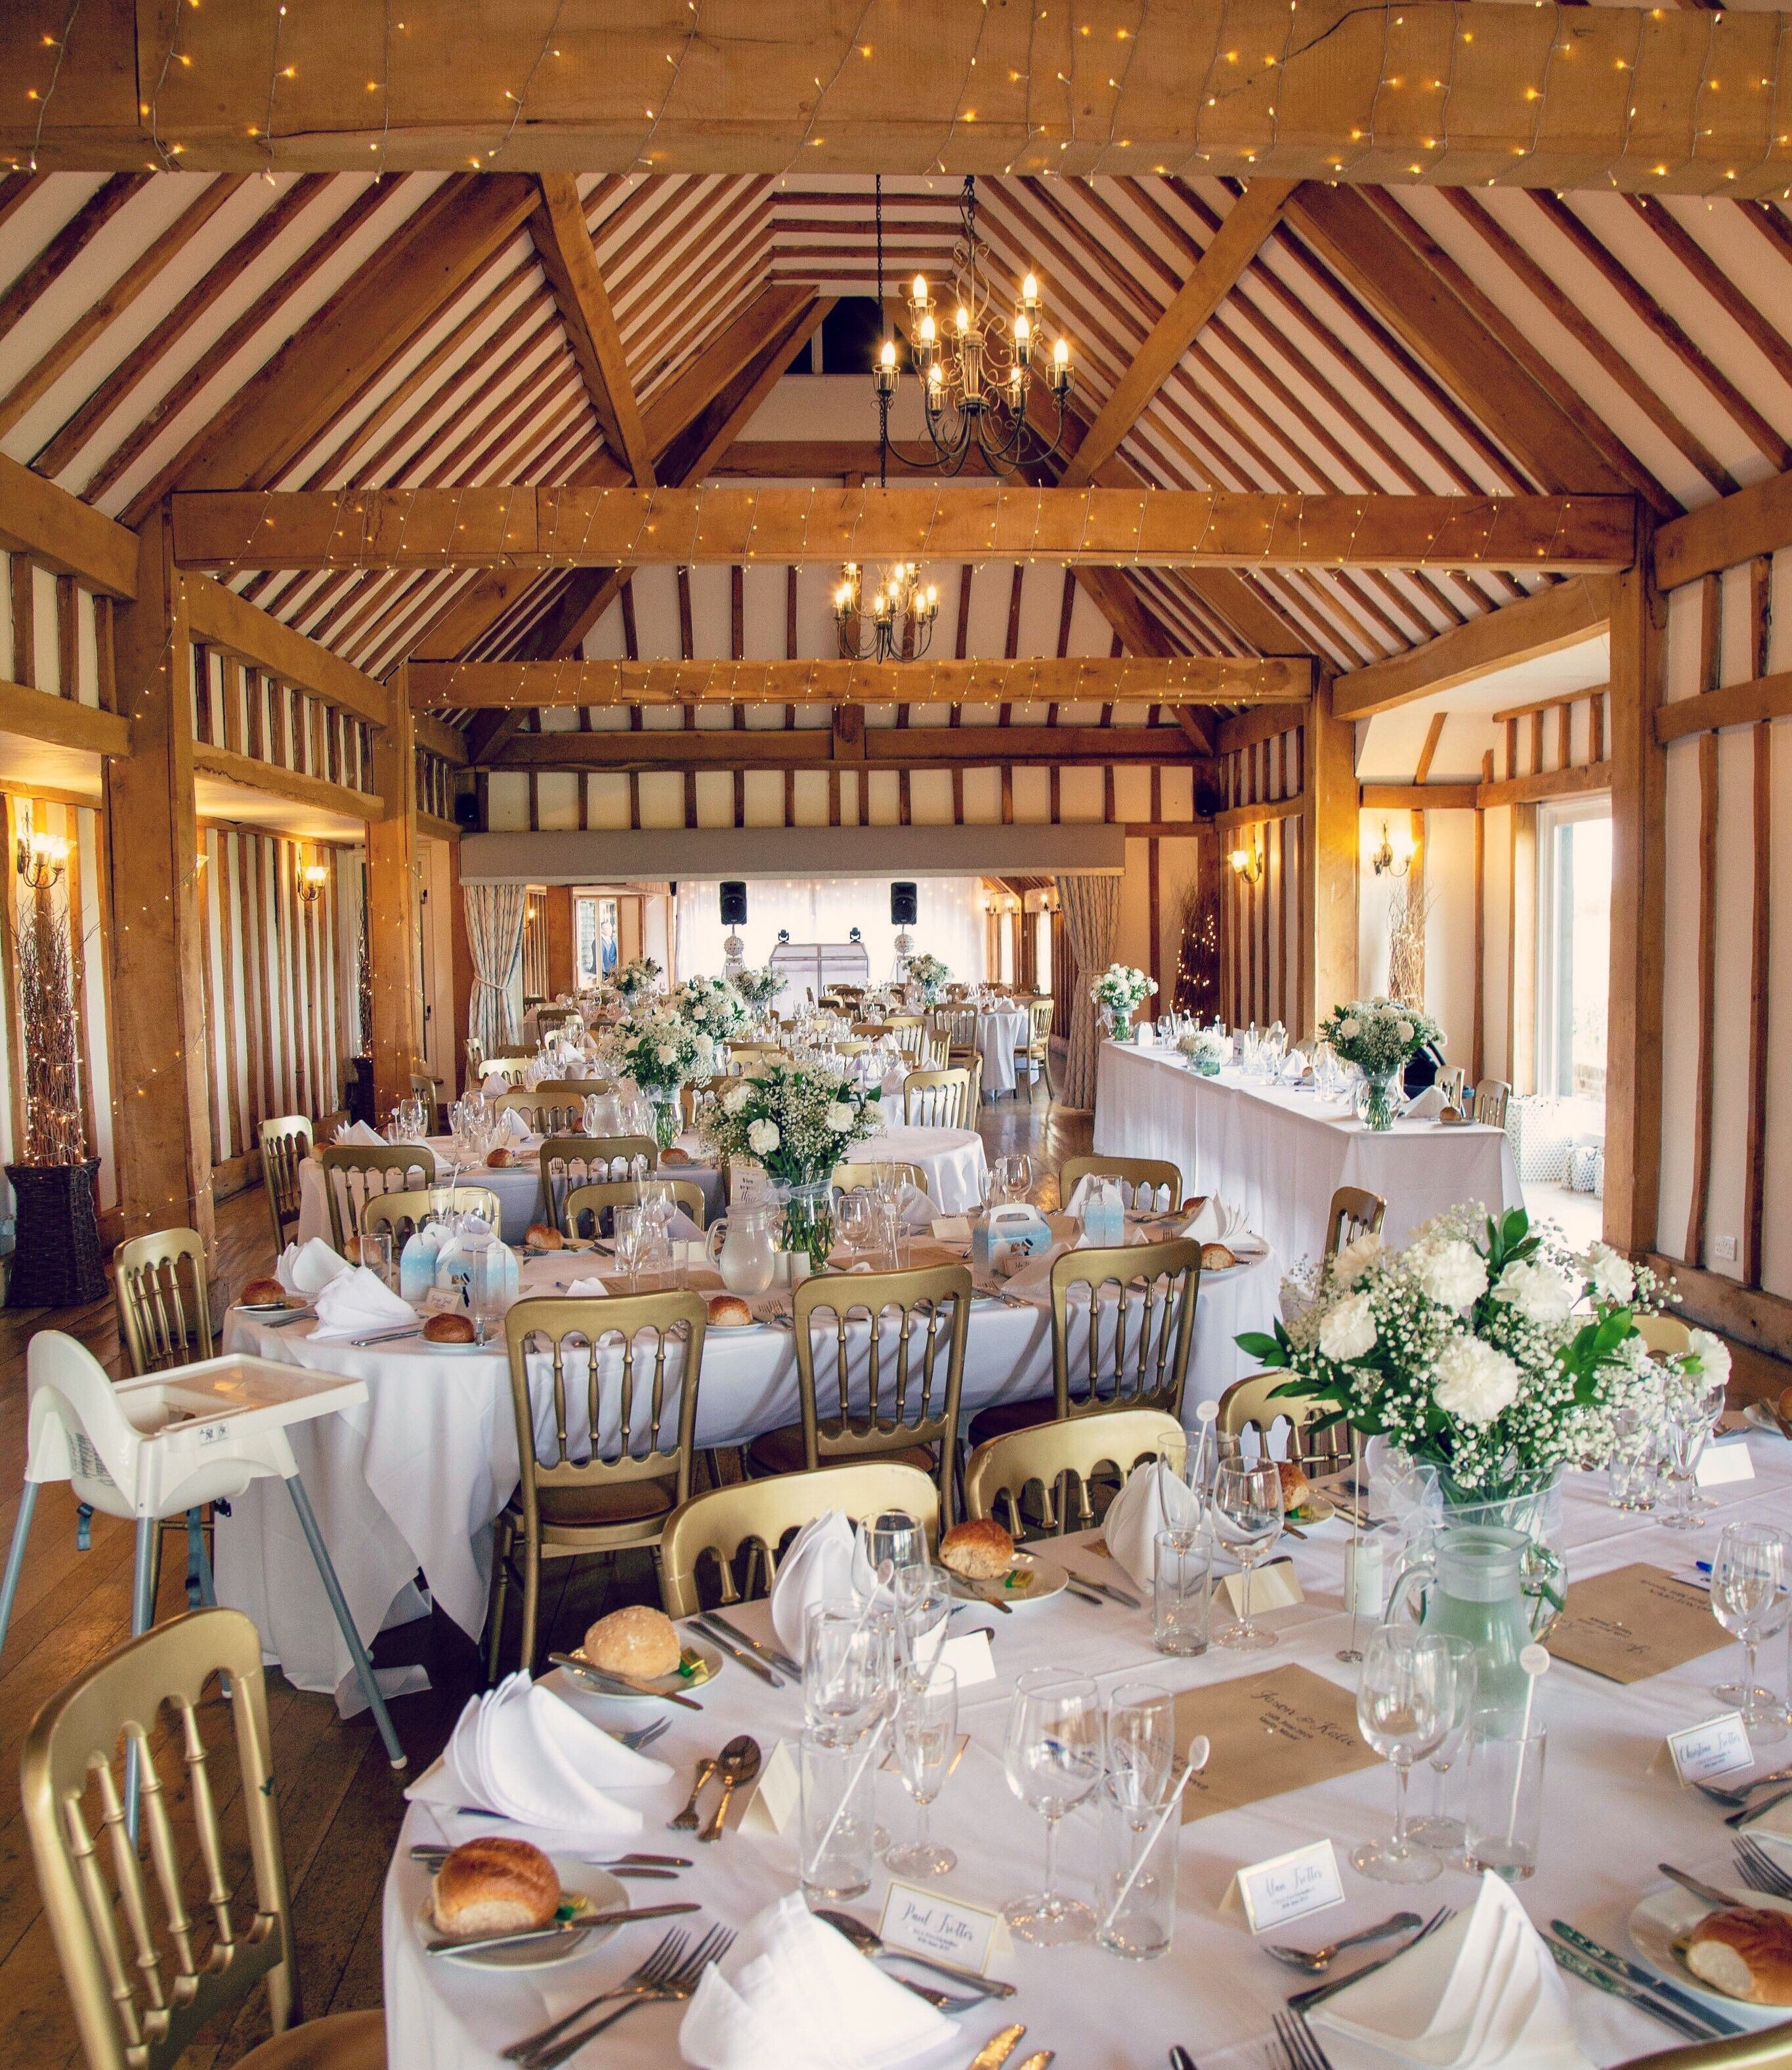 Civil Wedding Ideas: Pin By Vaulty Manor On Inside The Barn & Ideas (With